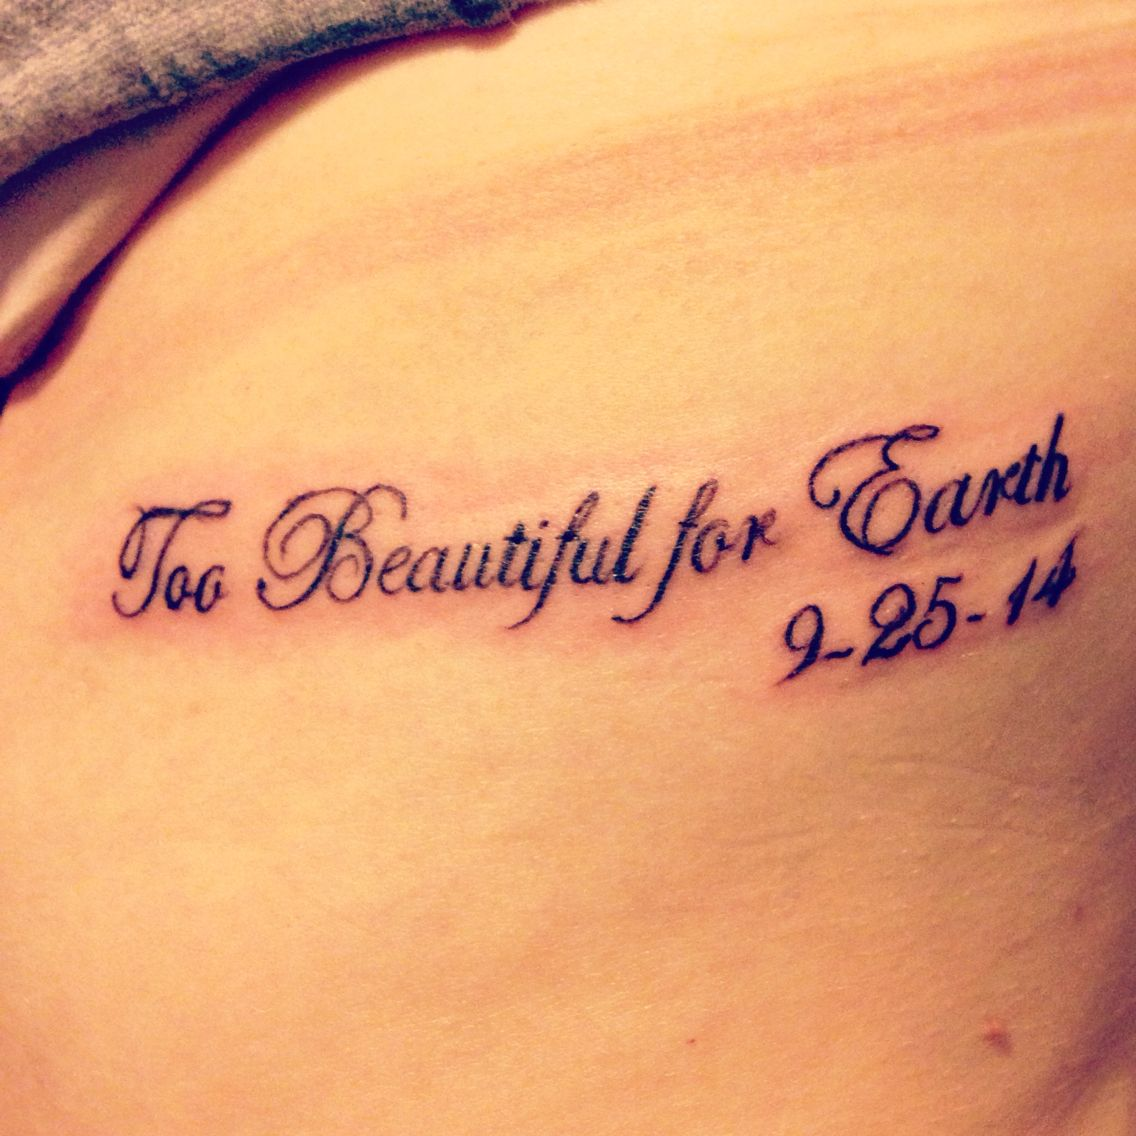 Tattoo Quotes For Unborn Baby: Miscarriage Tattoo Idea